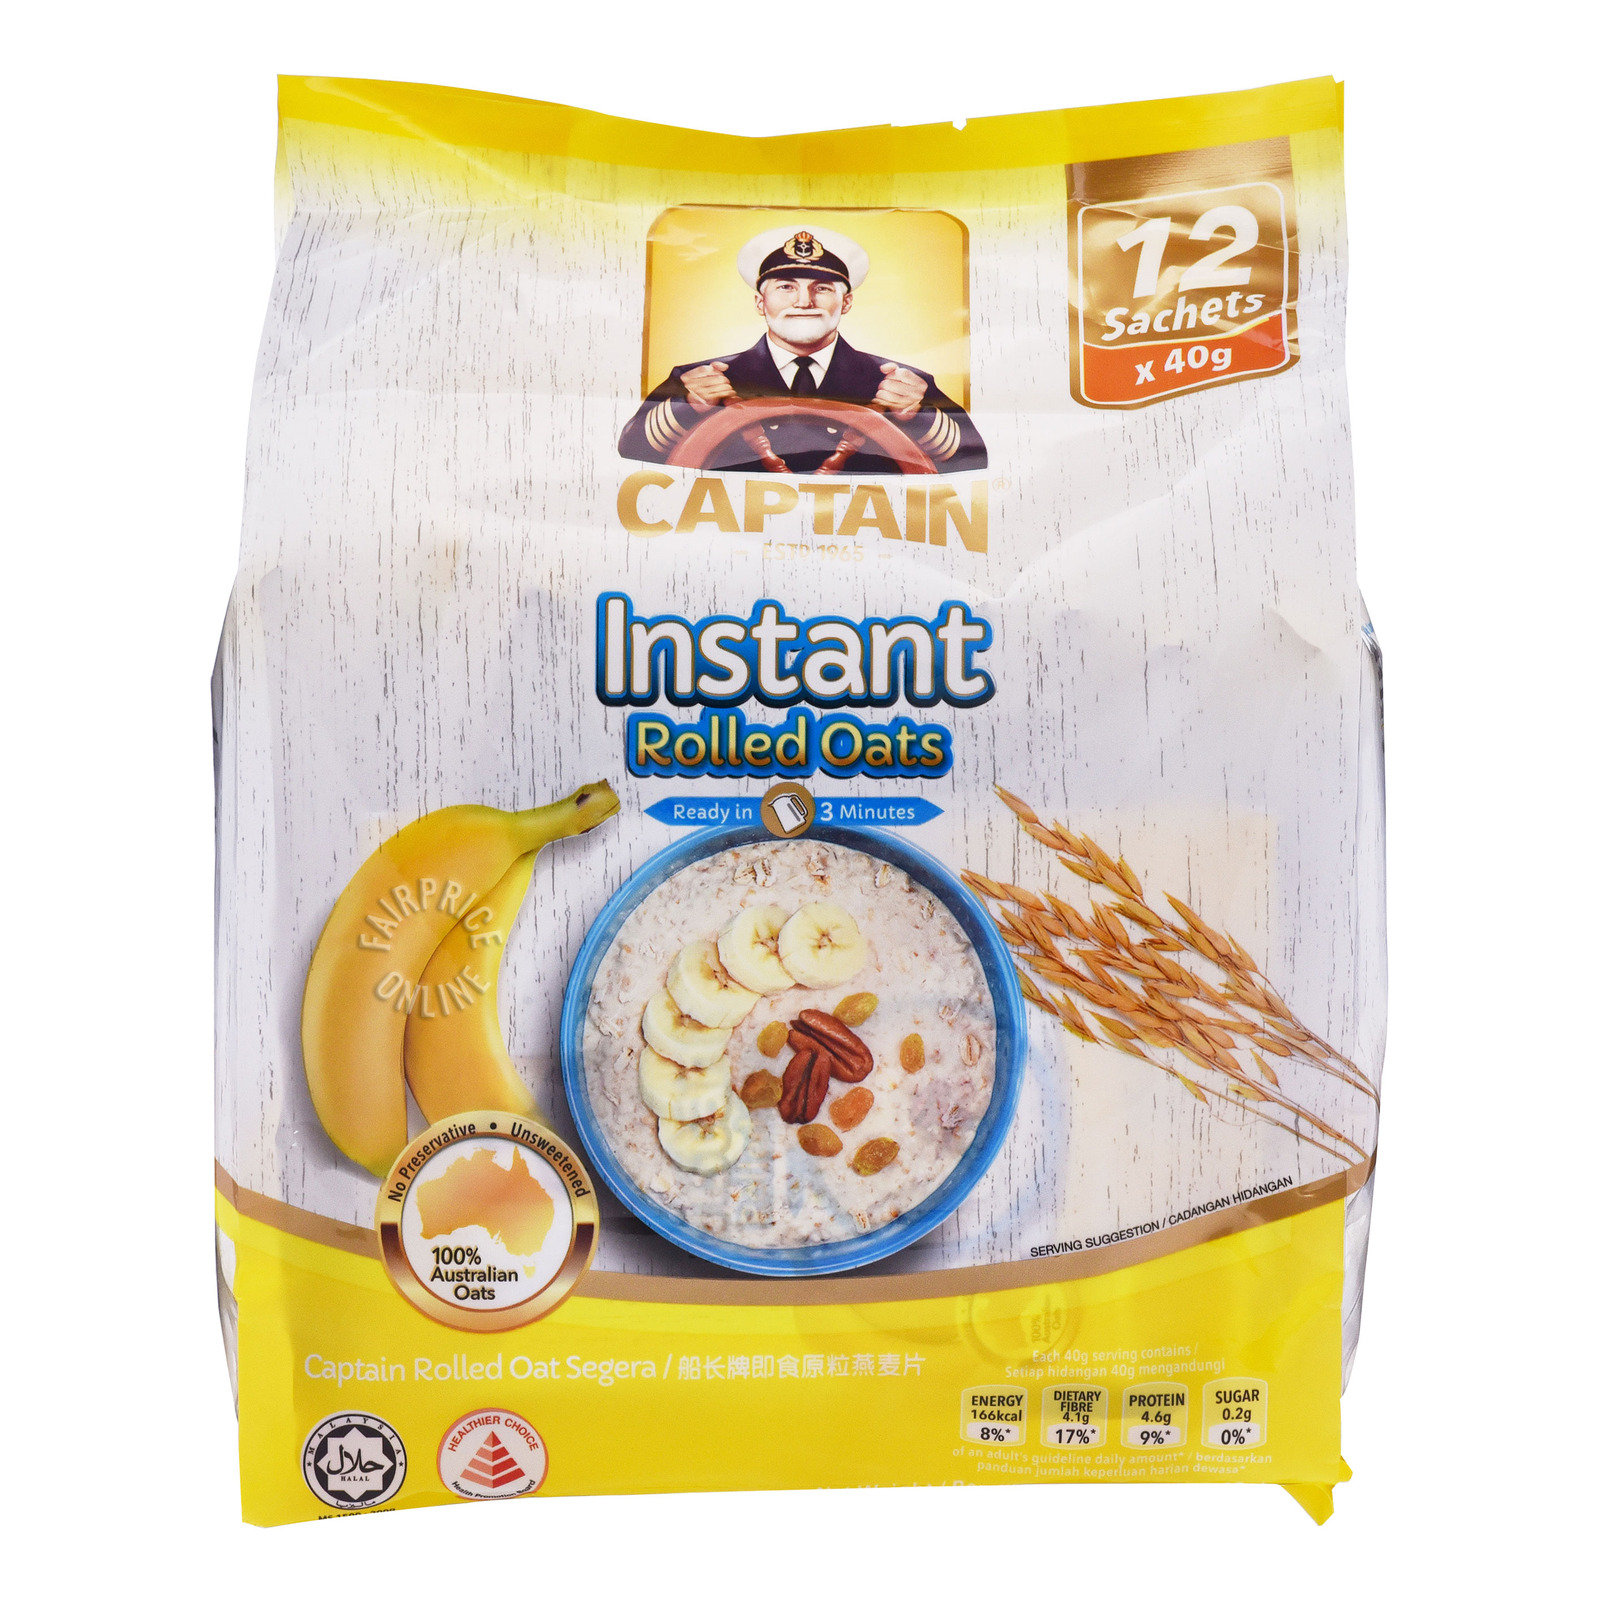 Captain Rolled Oats - Instant